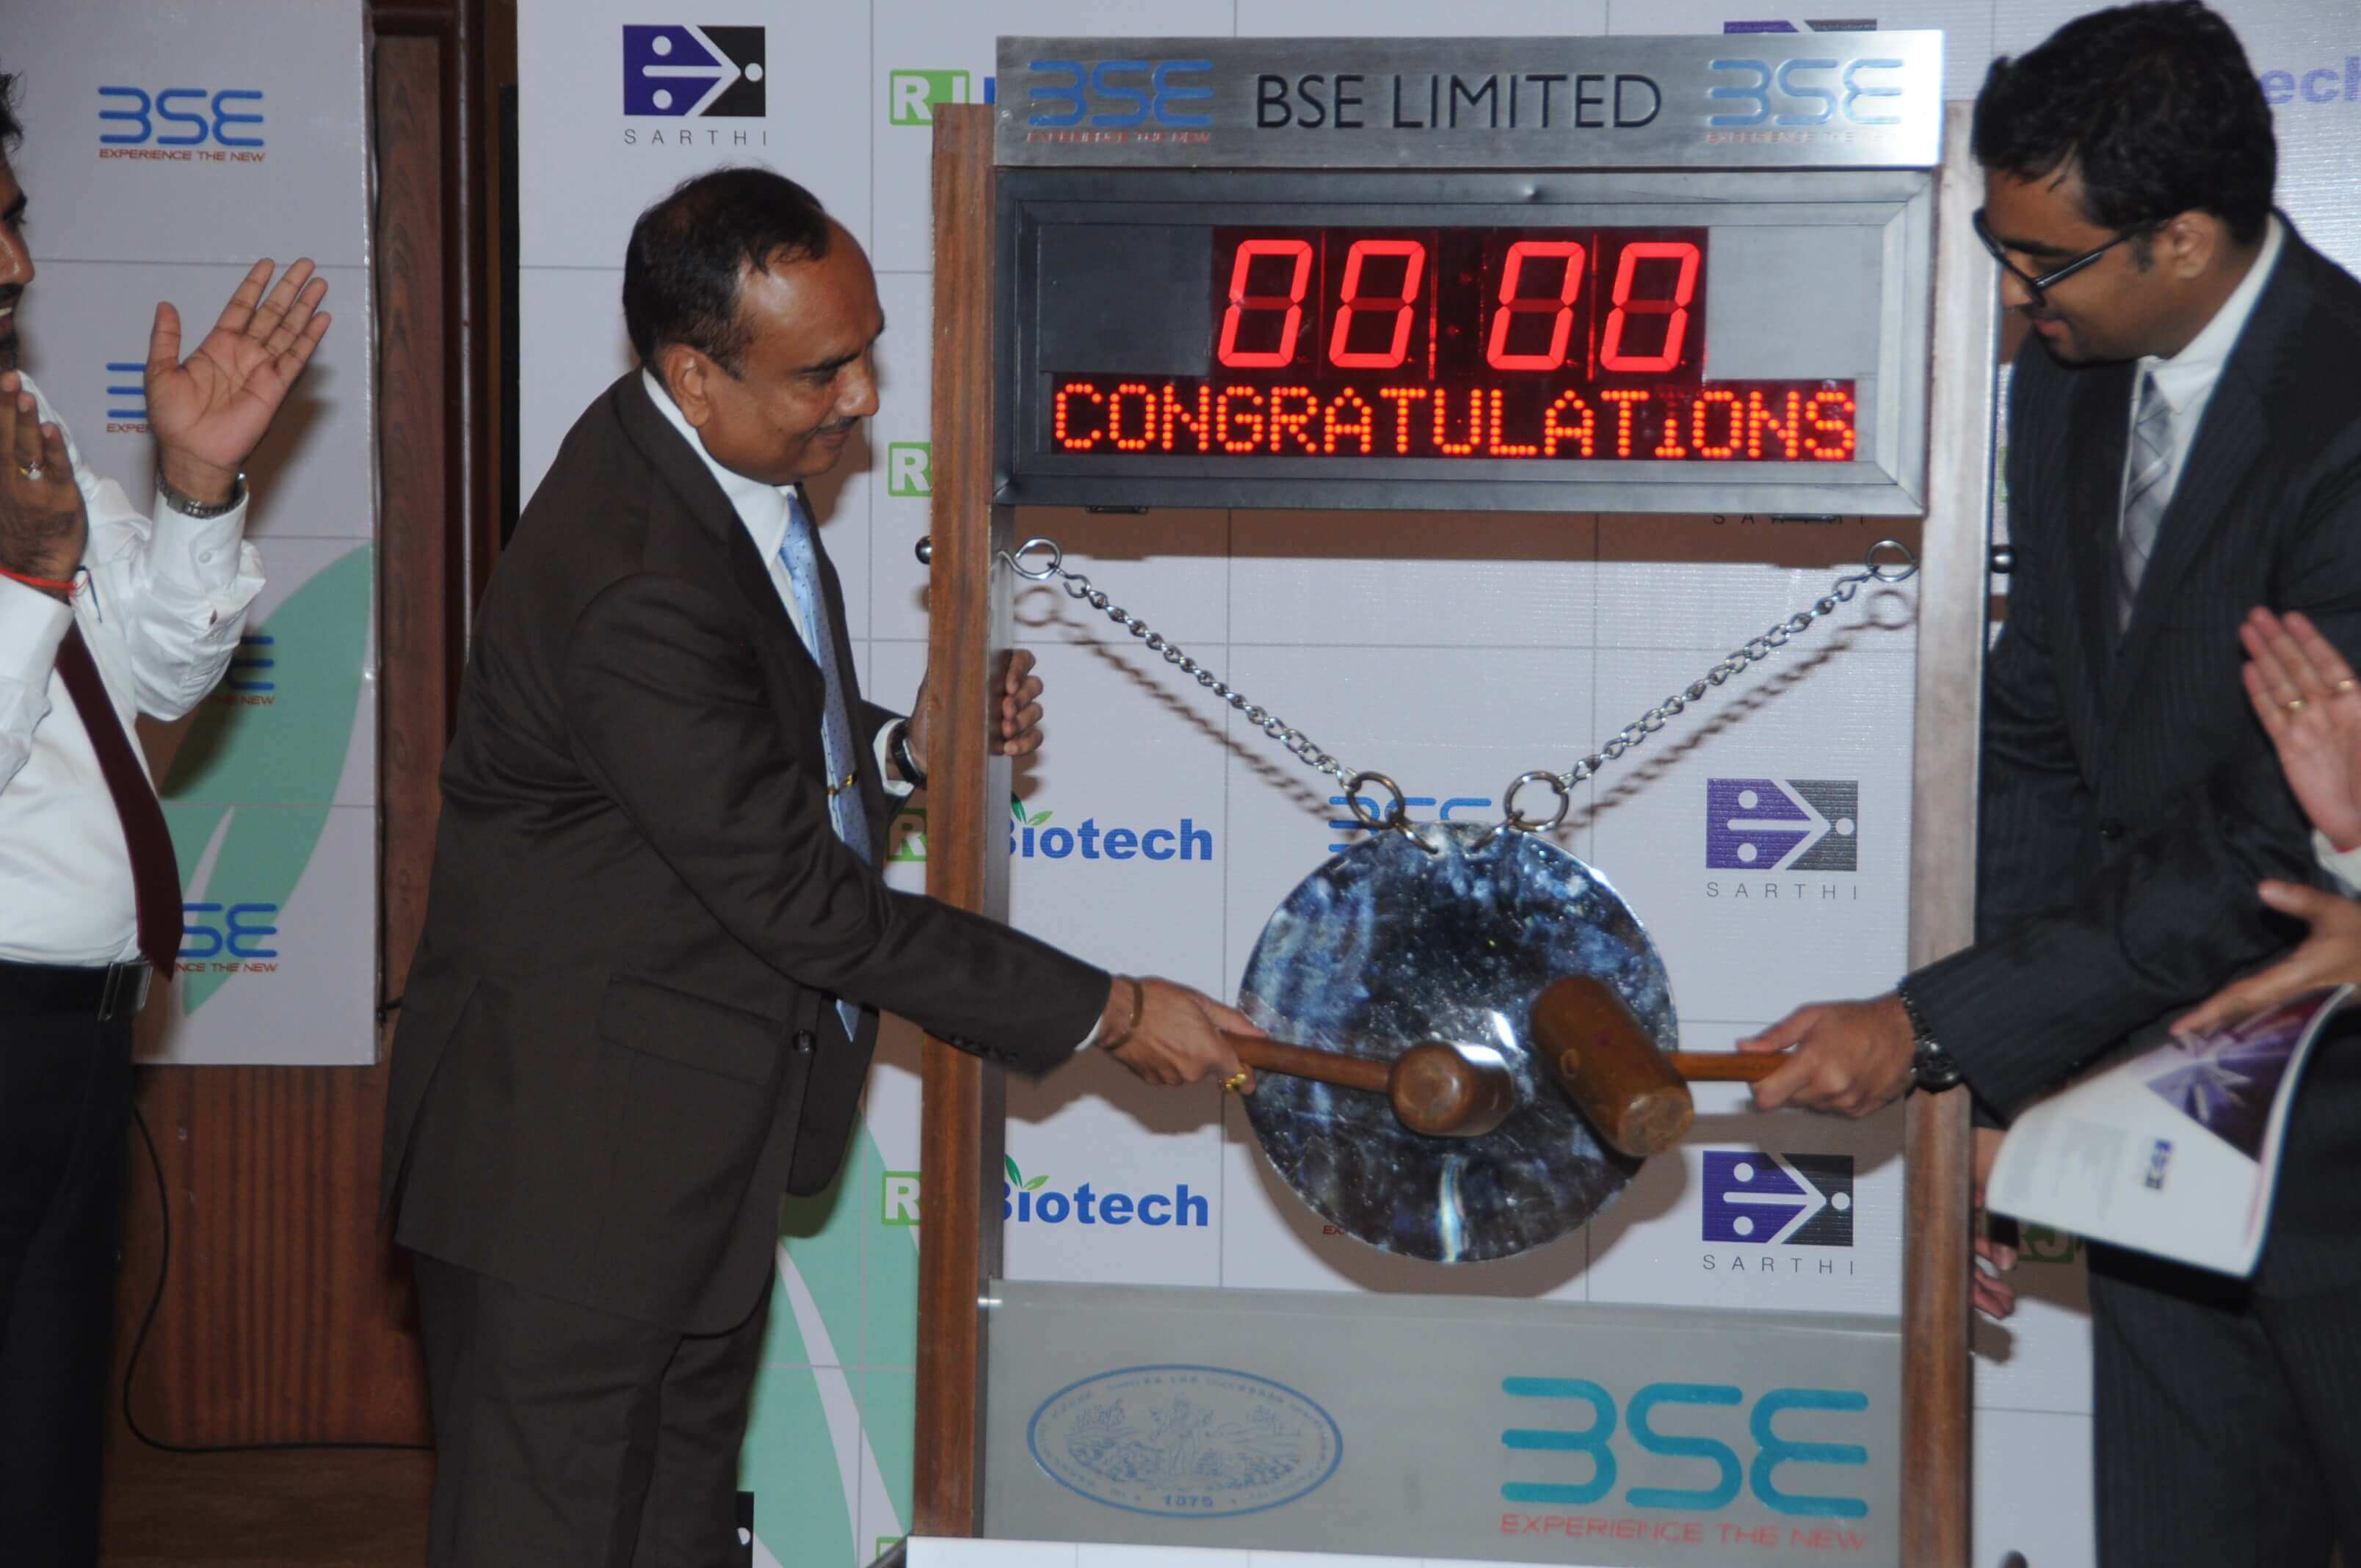 Listing Ceremony at BSE